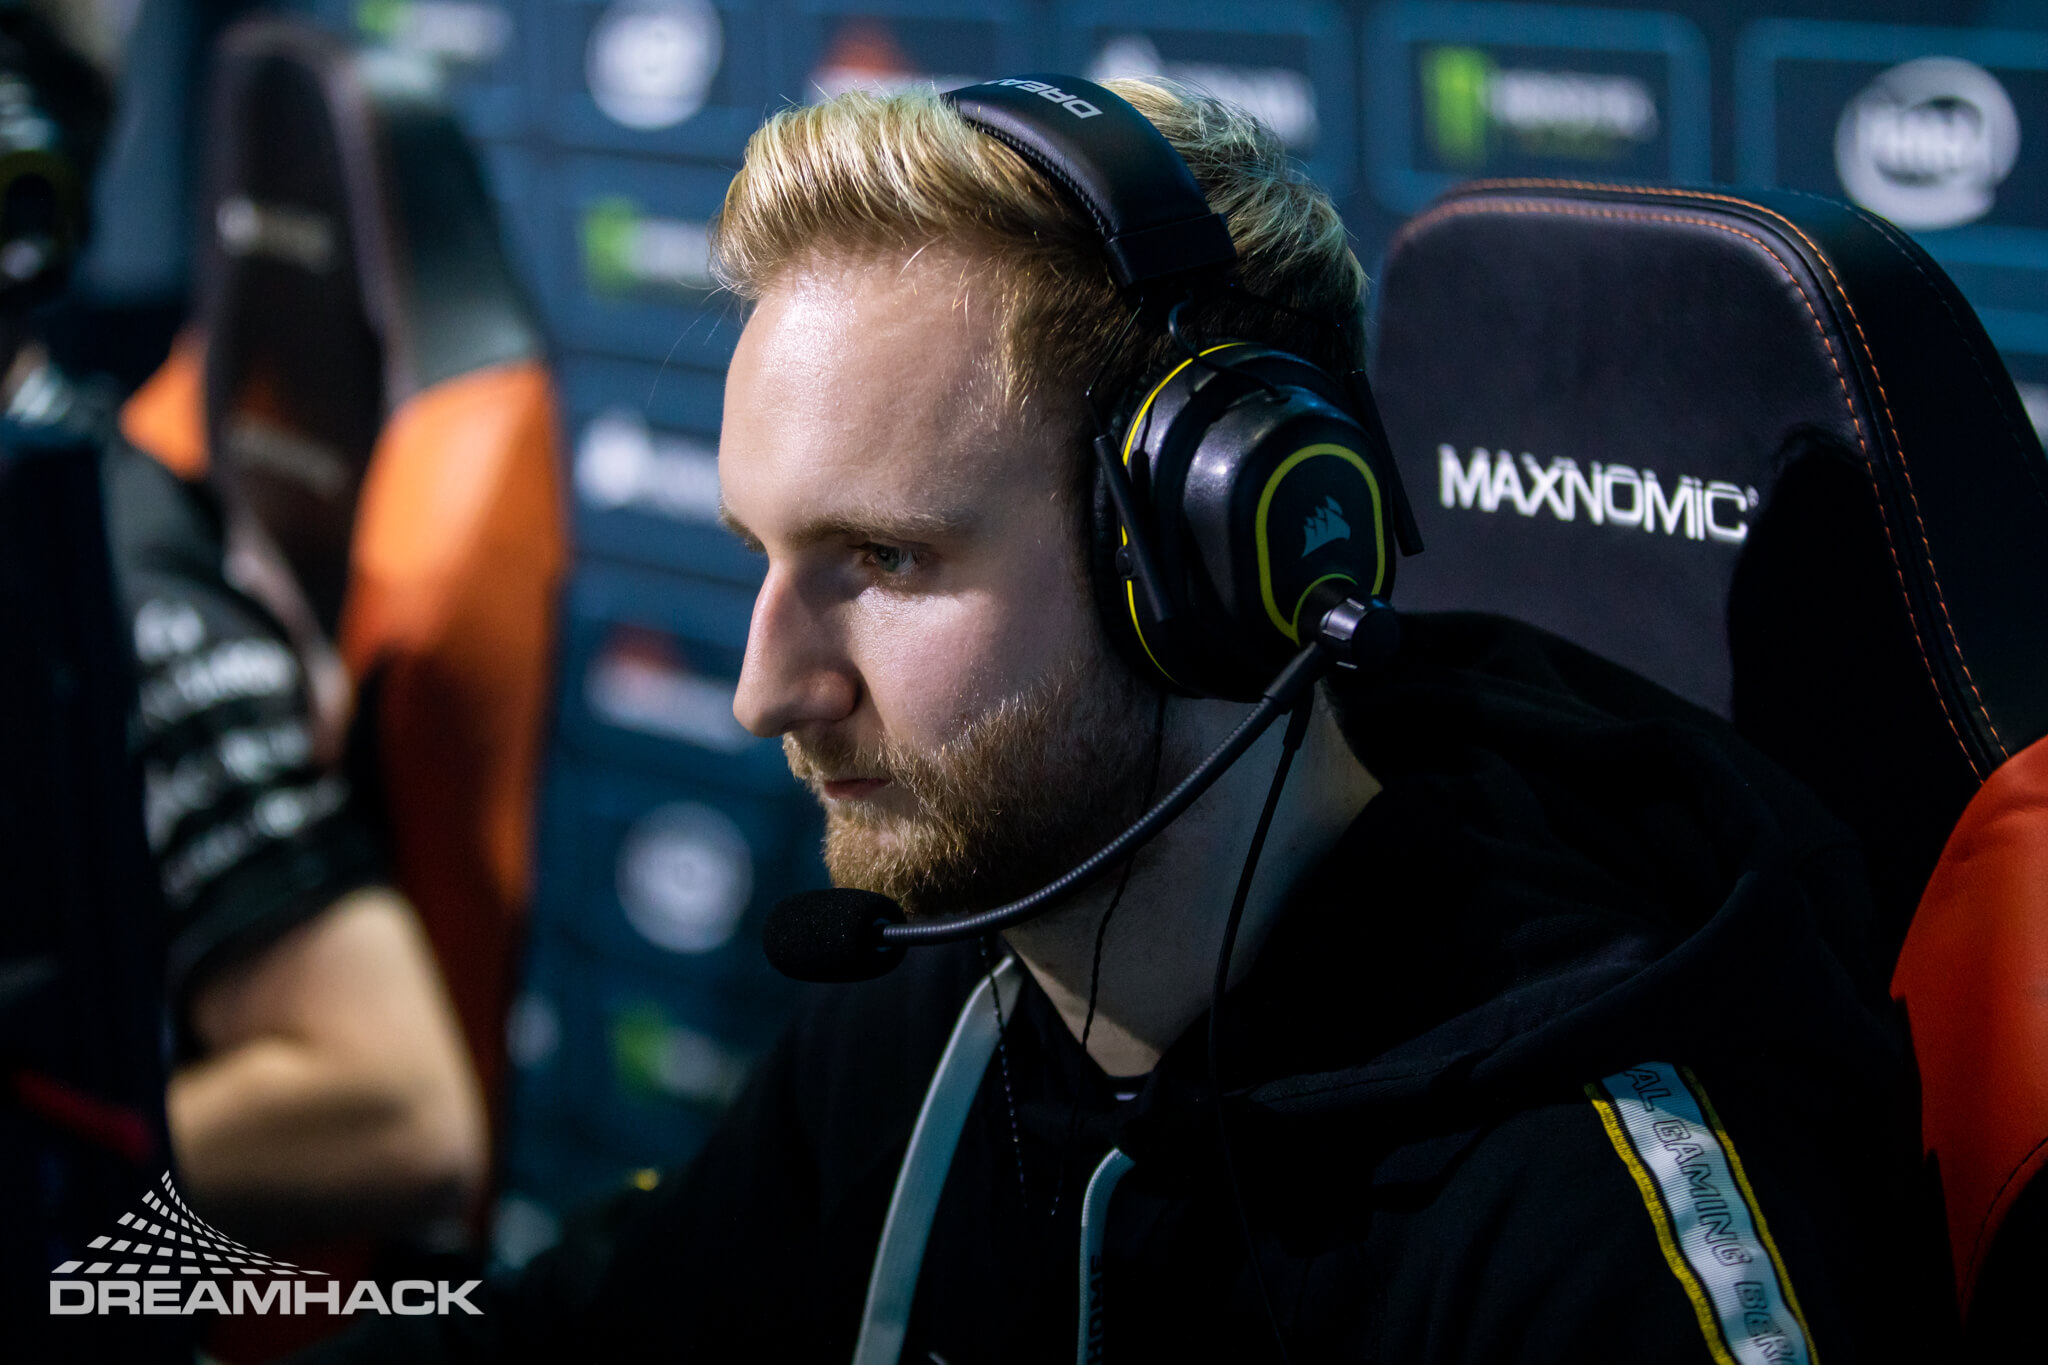 syrsoN from mousesports cs:go